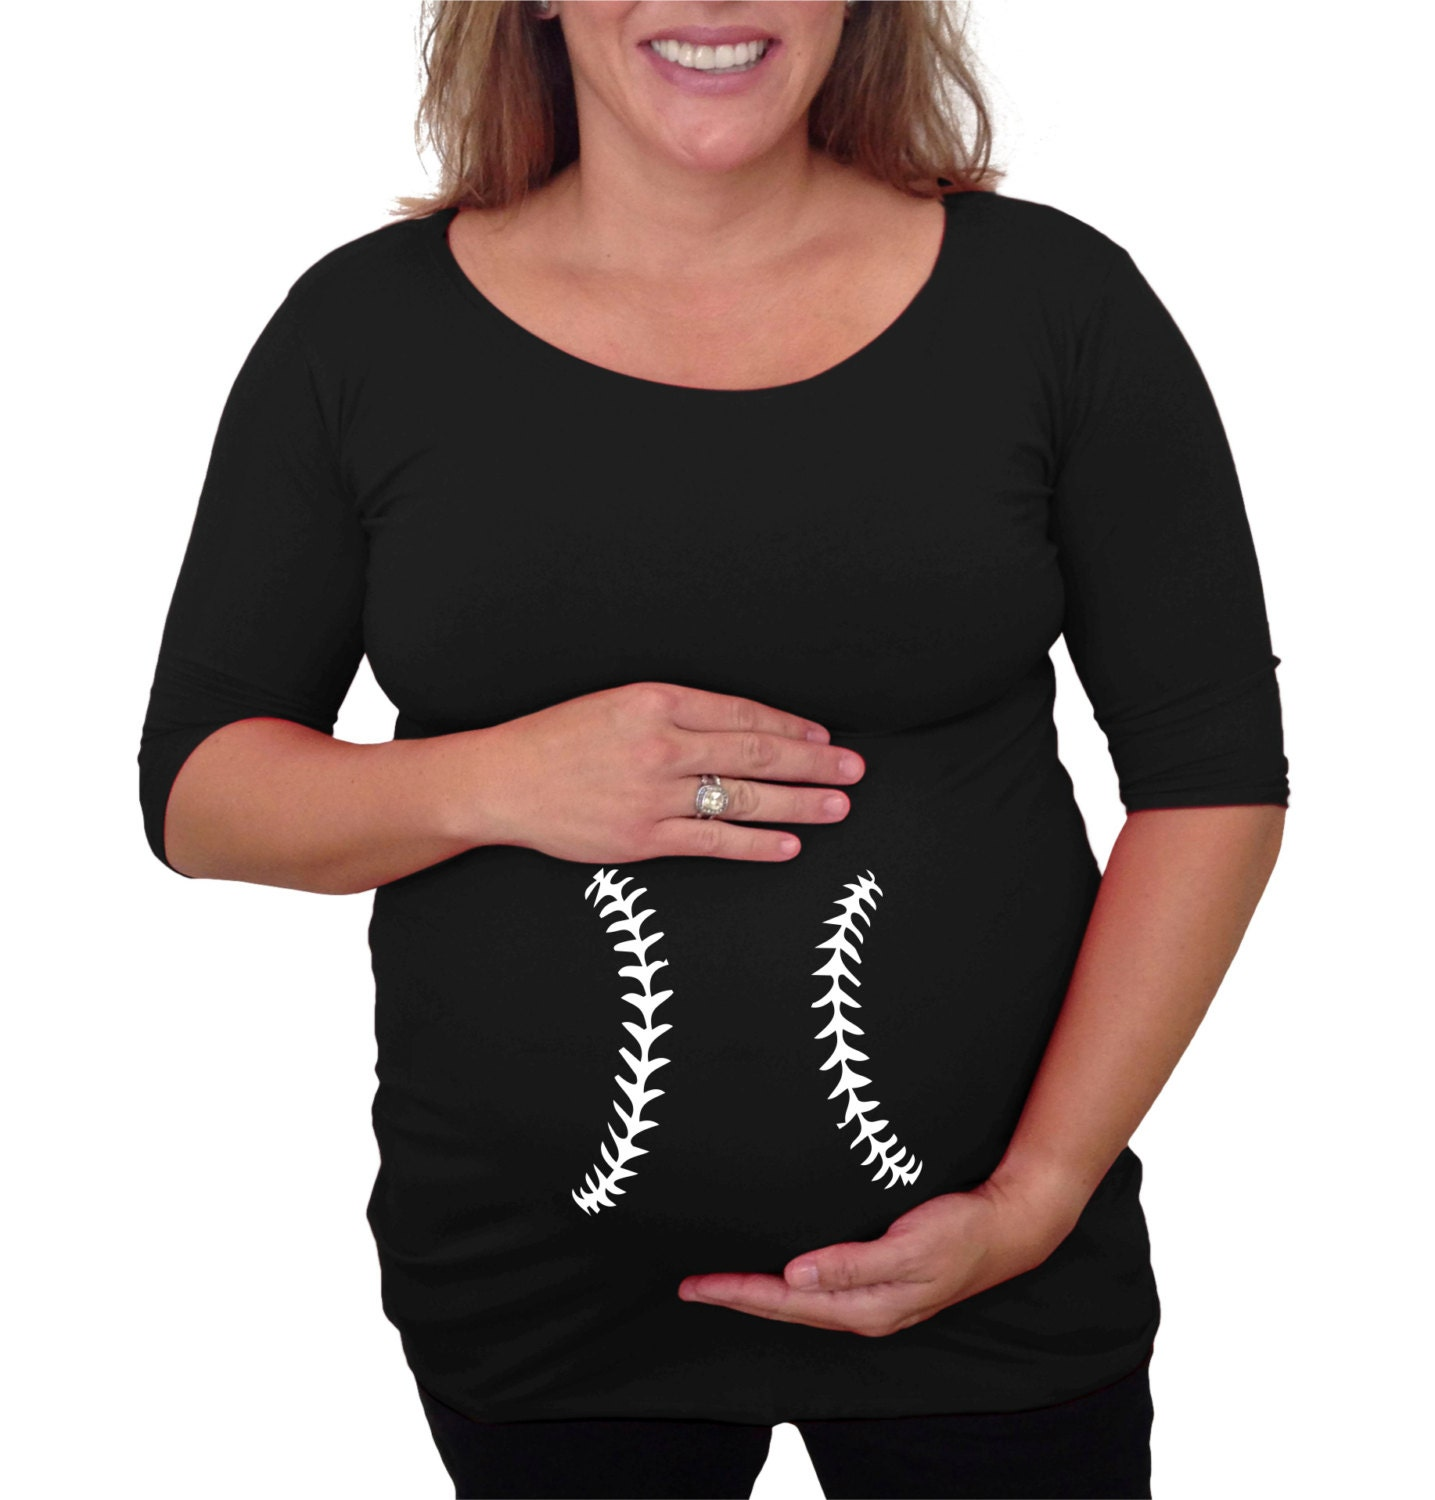 Shop Black Greek Maternity T-Shirts from CafePress. Find the perfect shirt to adorn your baby bump. With thousands of designs to choose from, you are certain to find the unique item you've been seeking. Free Returns High Quality Printing Fast Shipping.